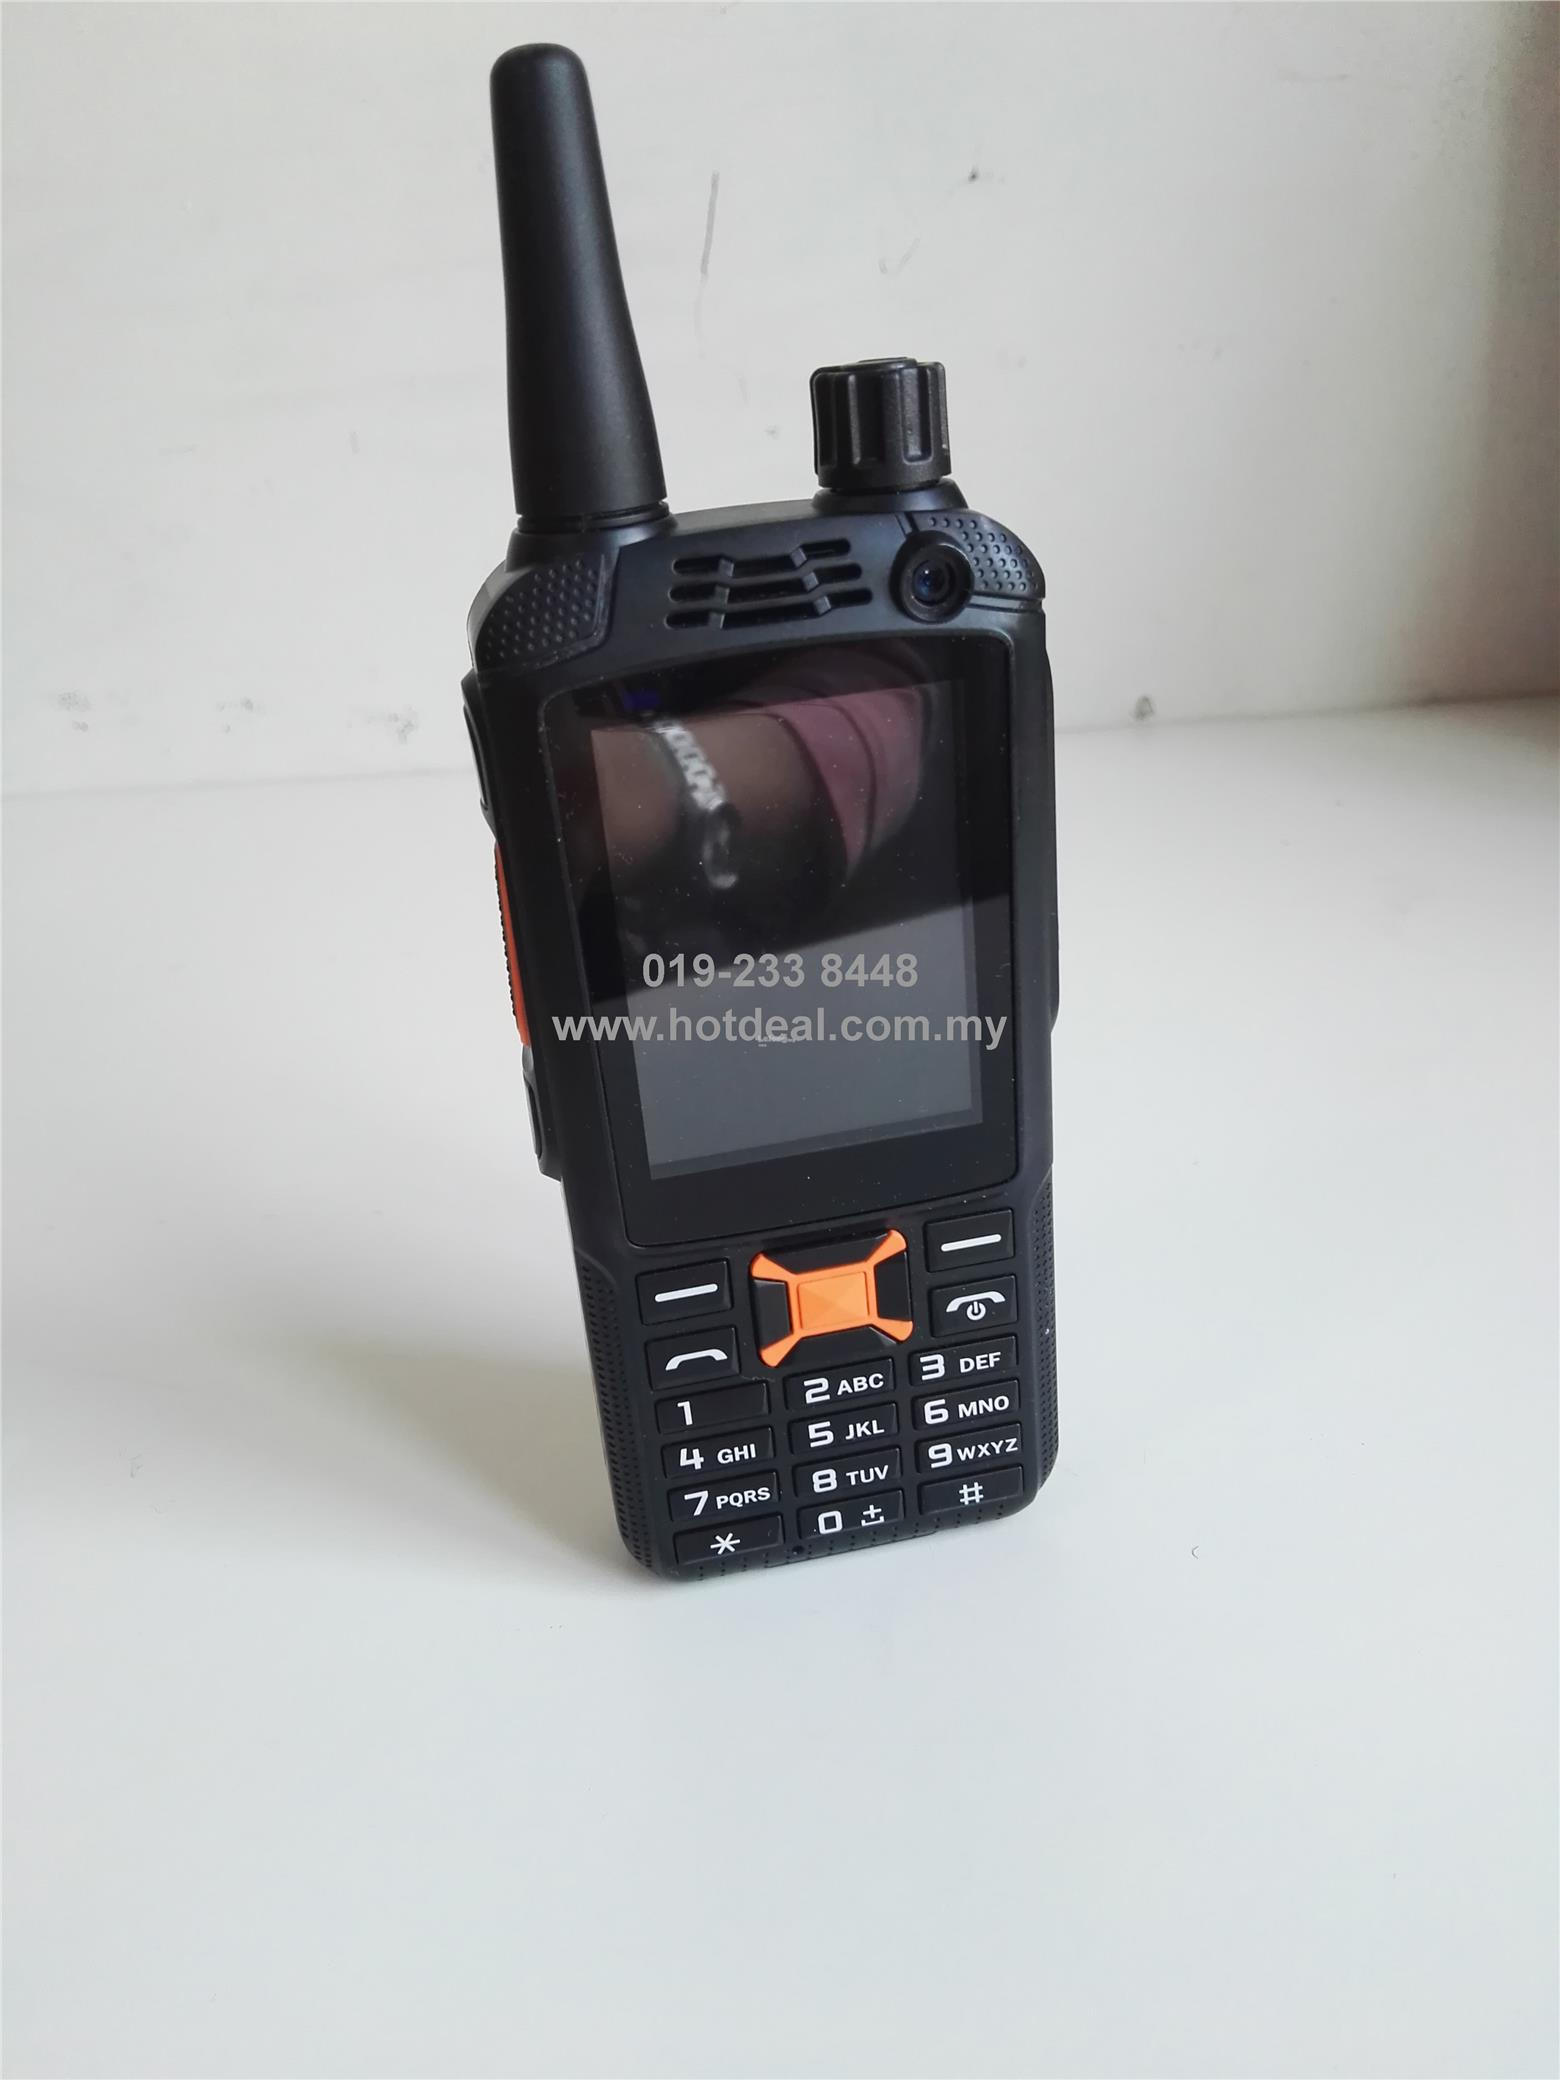 zello f22 phone walkie talkie end 11 19 2019 5 15 pm. Black Bedroom Furniture Sets. Home Design Ideas